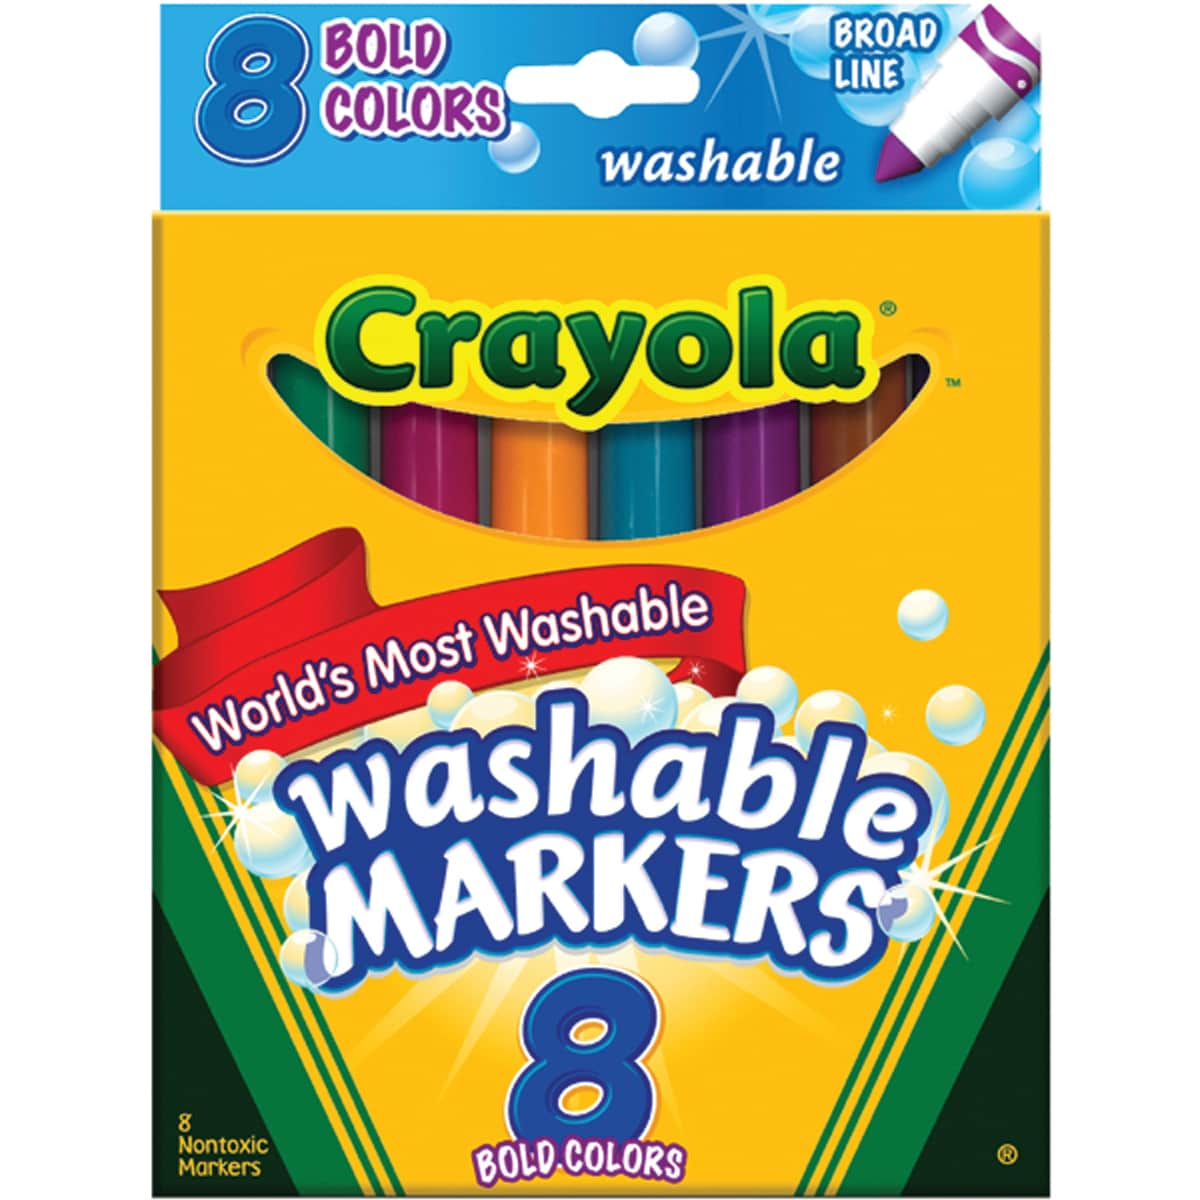 Crayola Broad Line Washable Markers (Pack of 8) at Sears.com